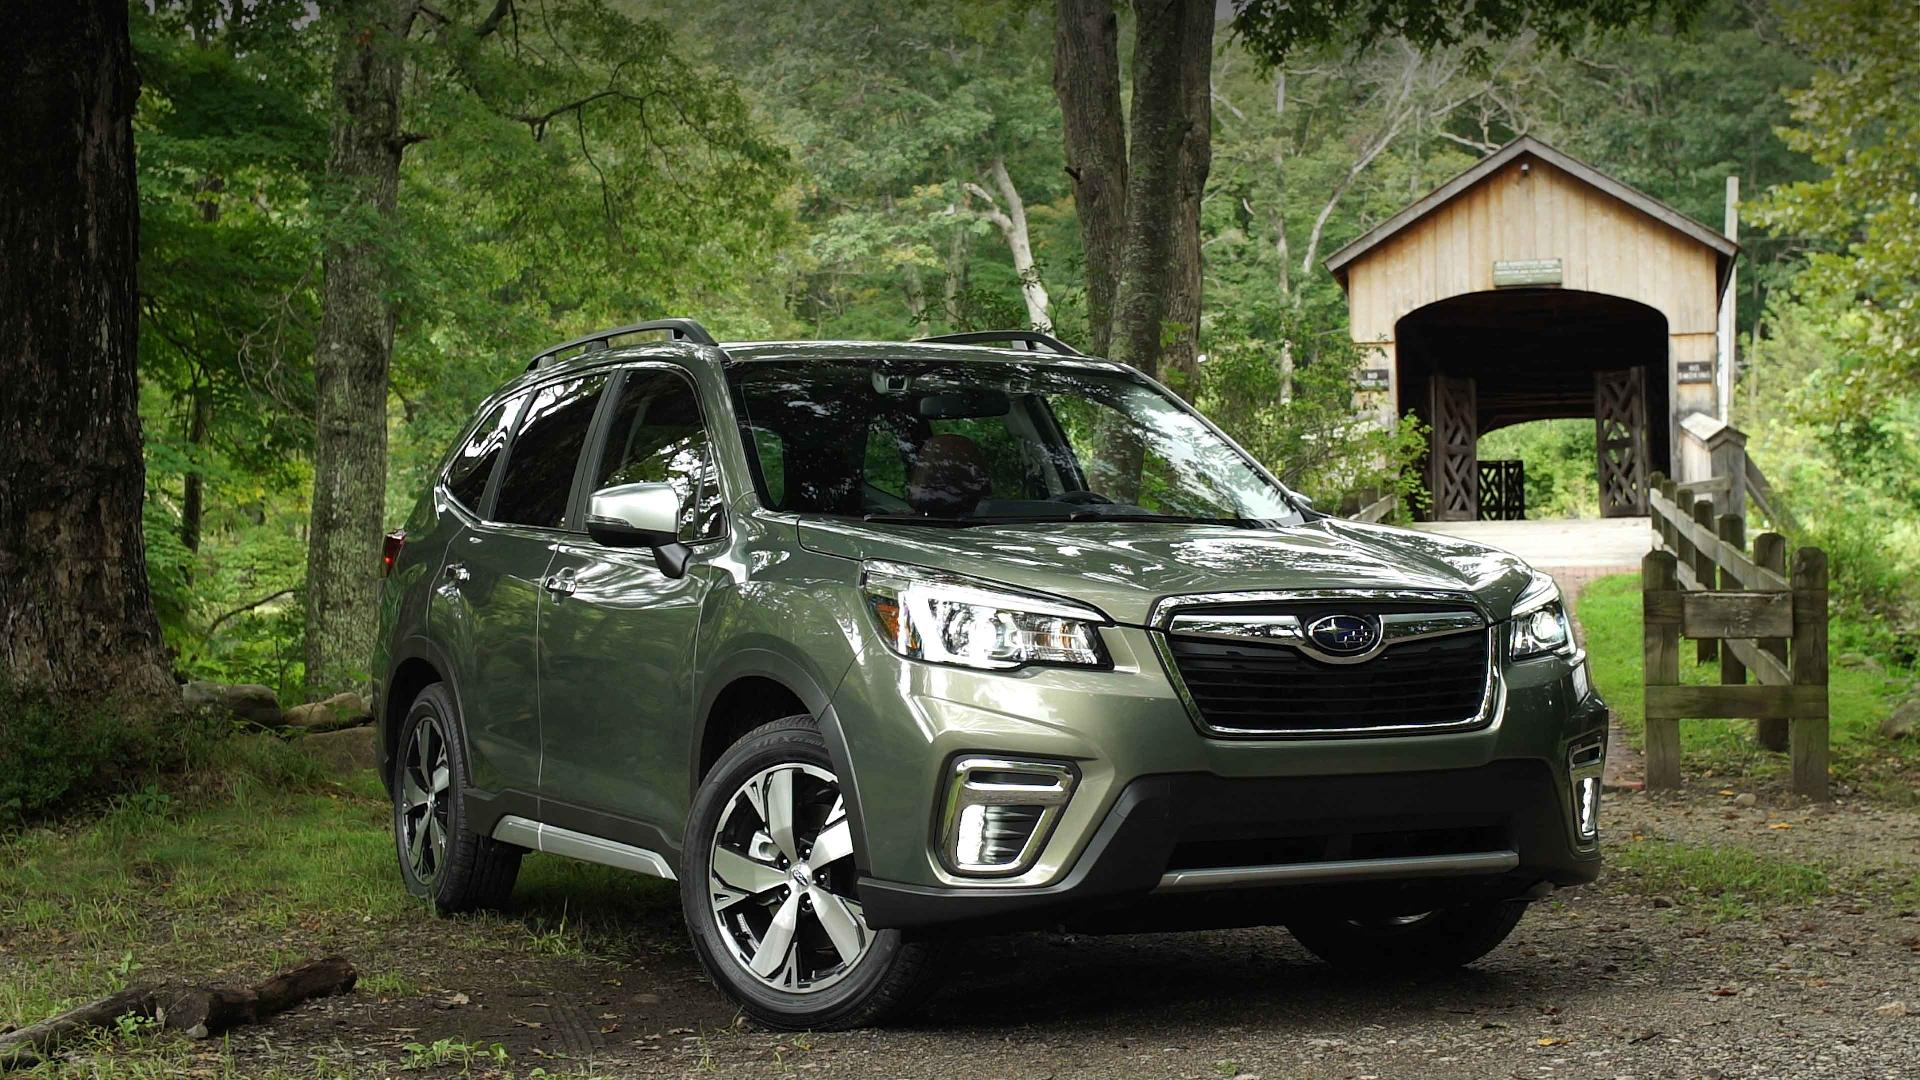 2019 Subaru Forester Improves Upon a Good Thing - Consumer